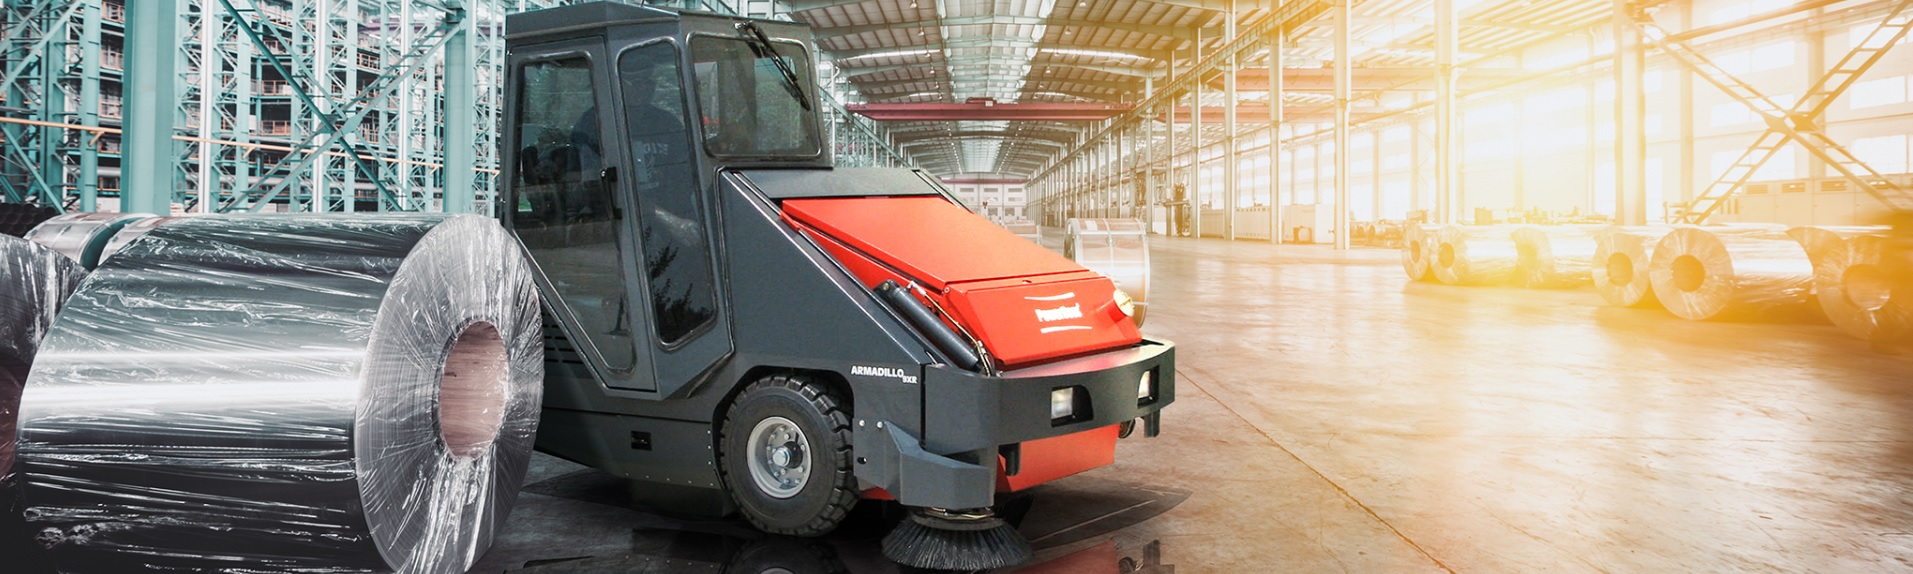 PowerBoss Armadillo 9X Sweeper Features Overview